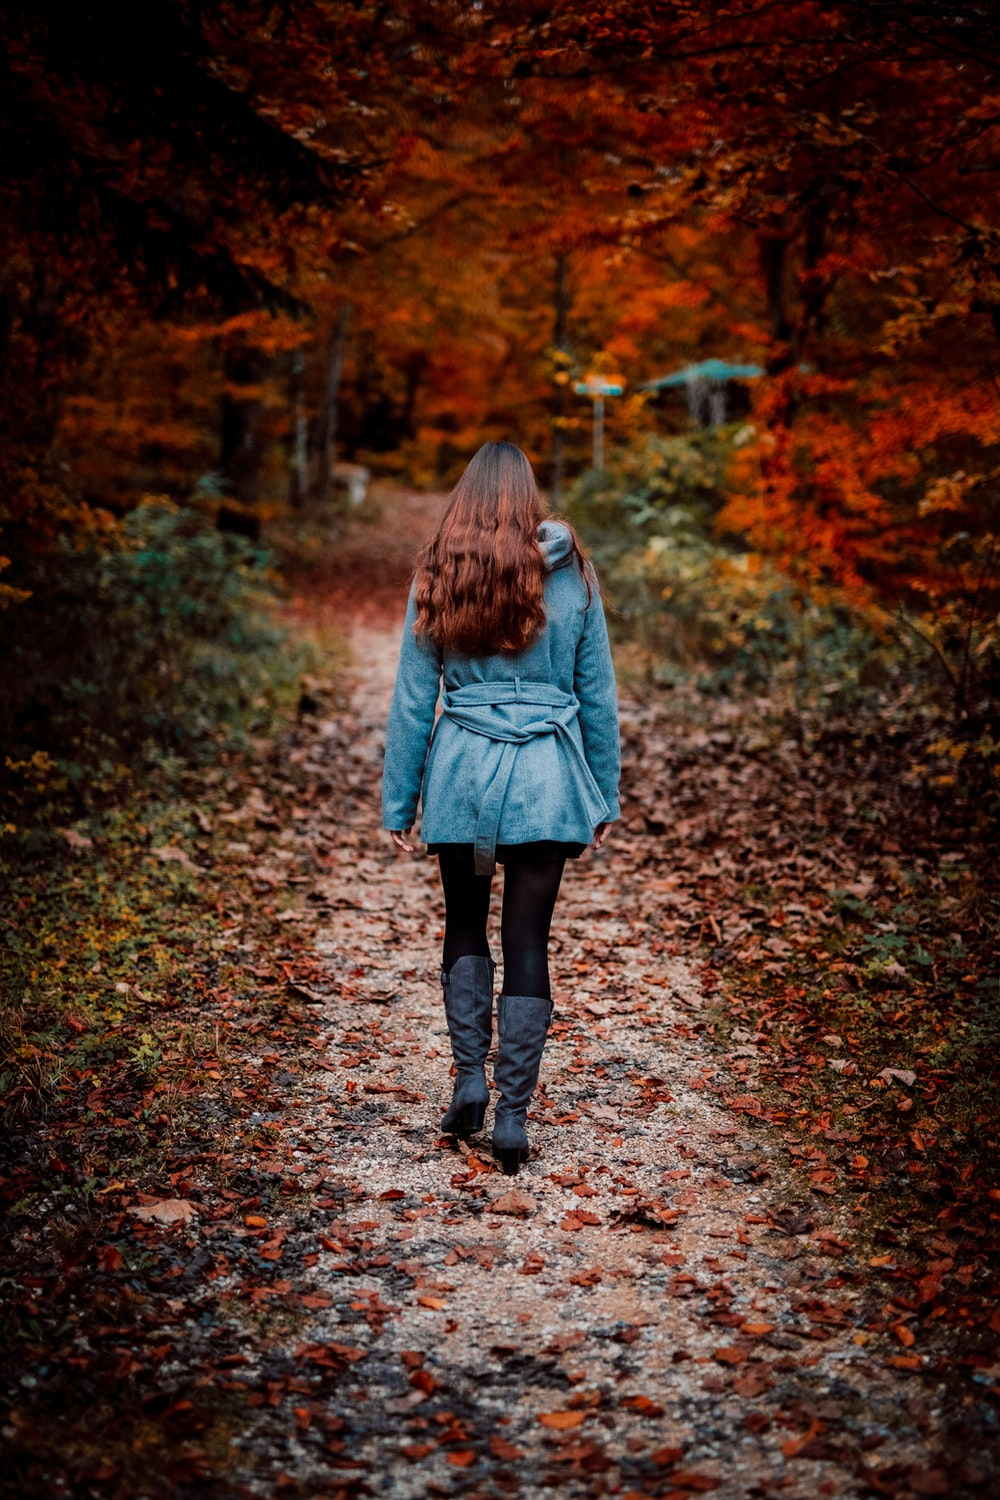 woman in gray coat walking on brown dried leaves on pathway